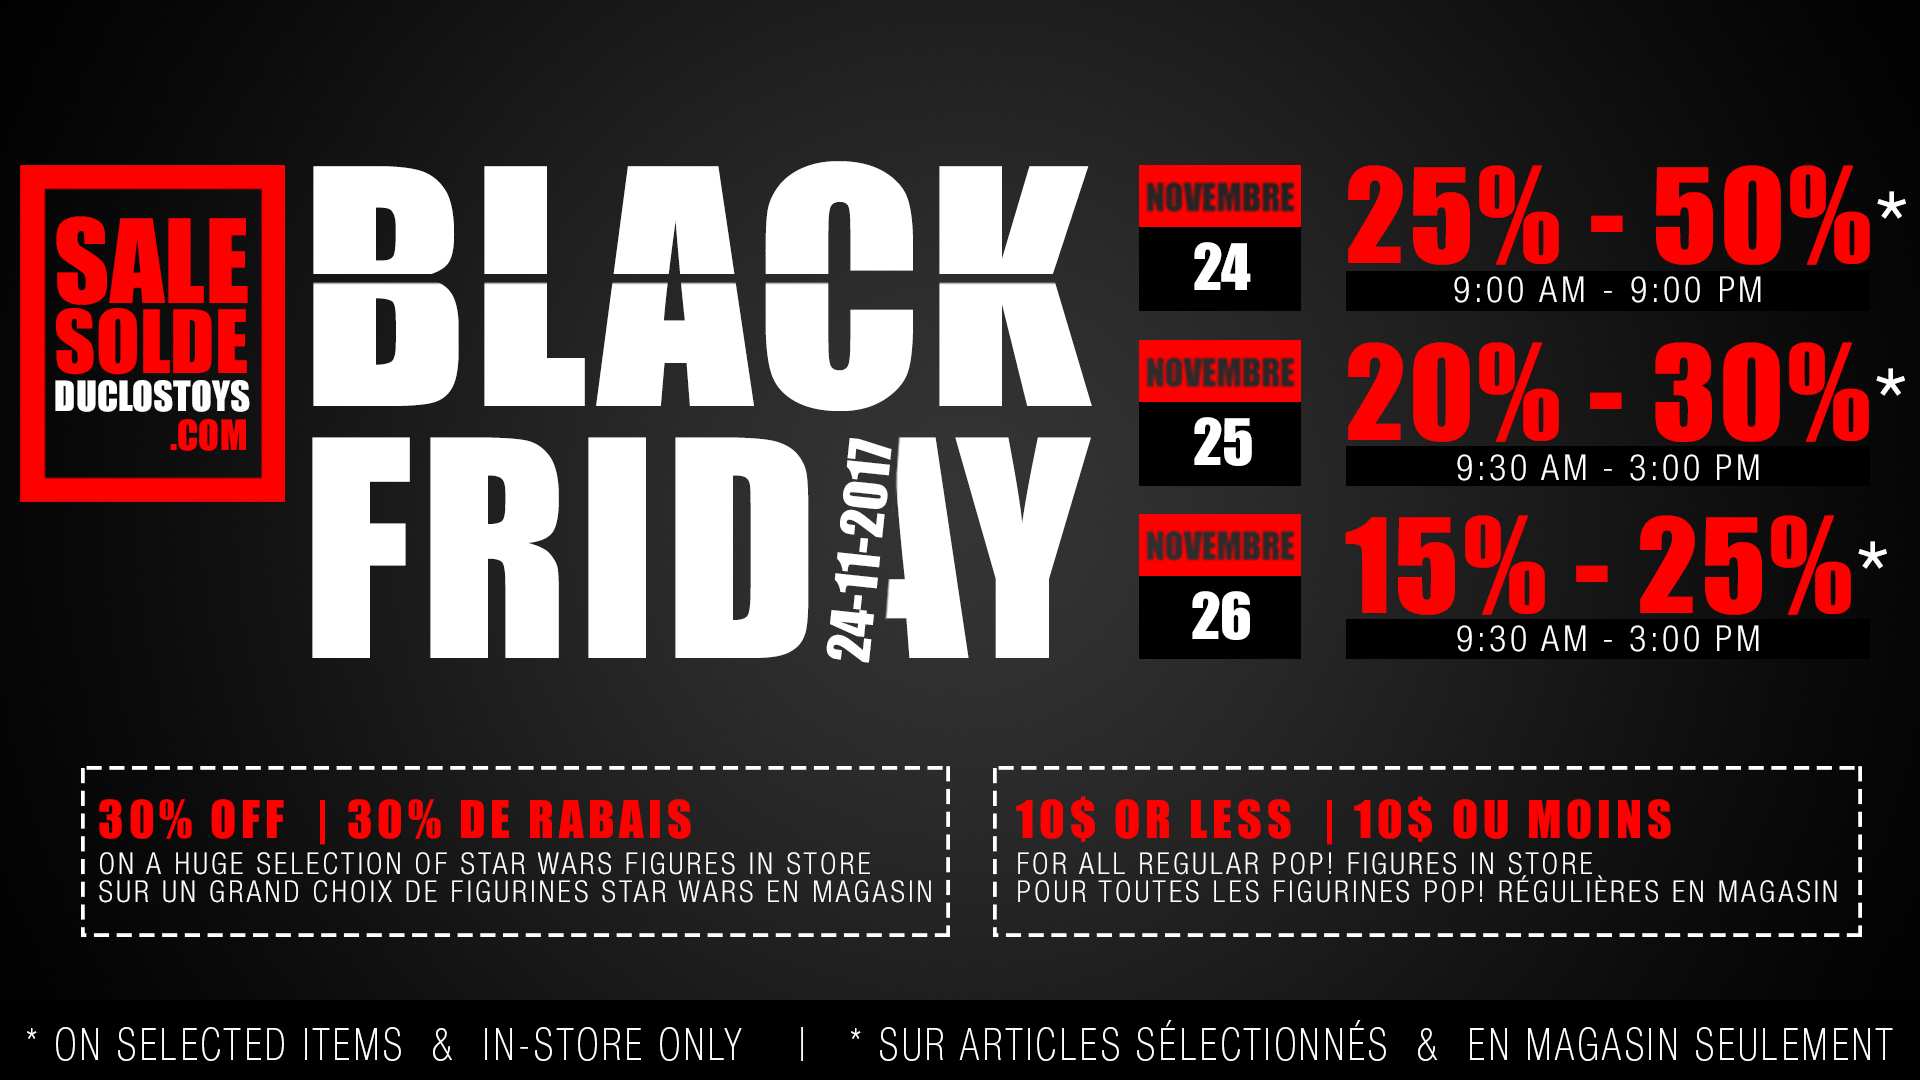 Store A Rabais Duclos Jouets Black Friday 2017 Special Offers Announcement